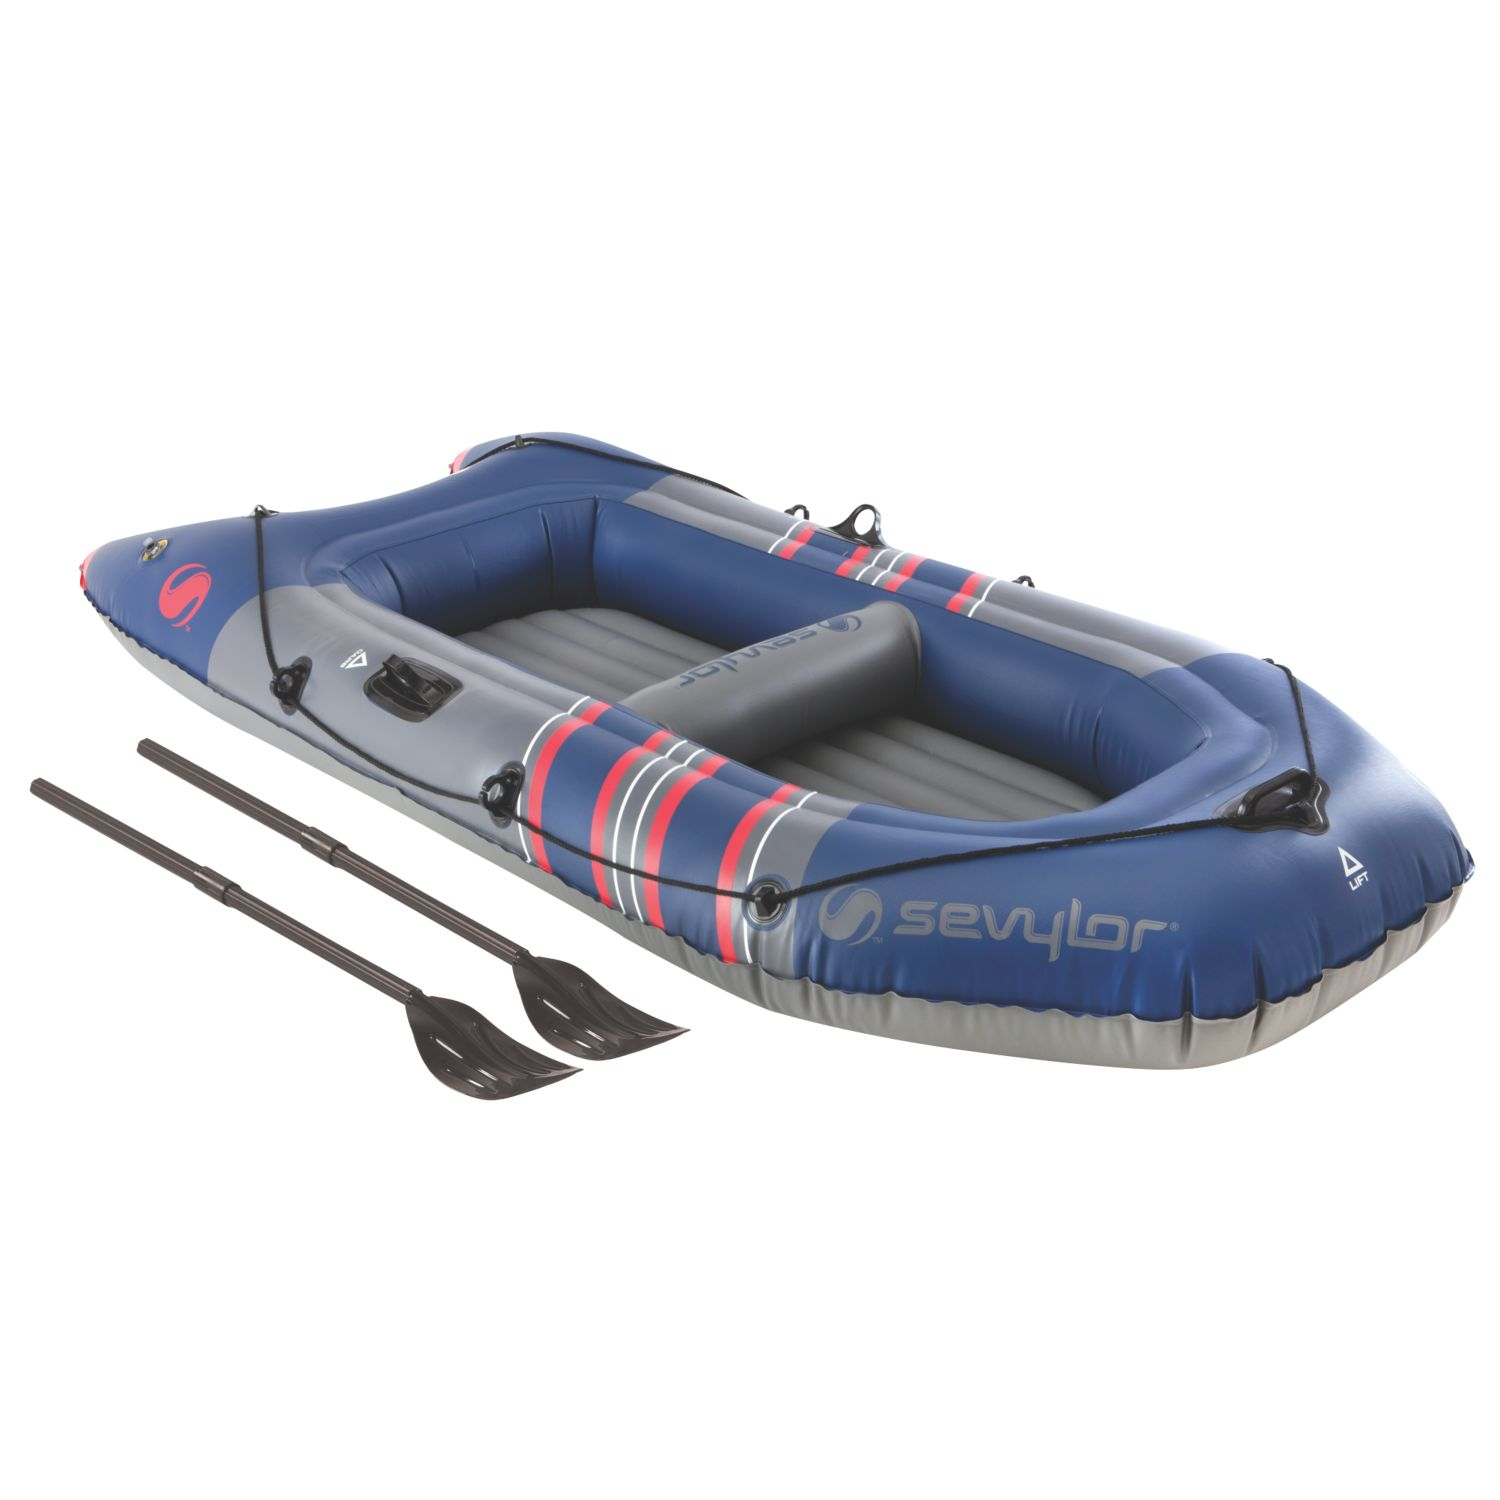 Sevylor Colossus 3-Person Inflatable Boat by Sevylor